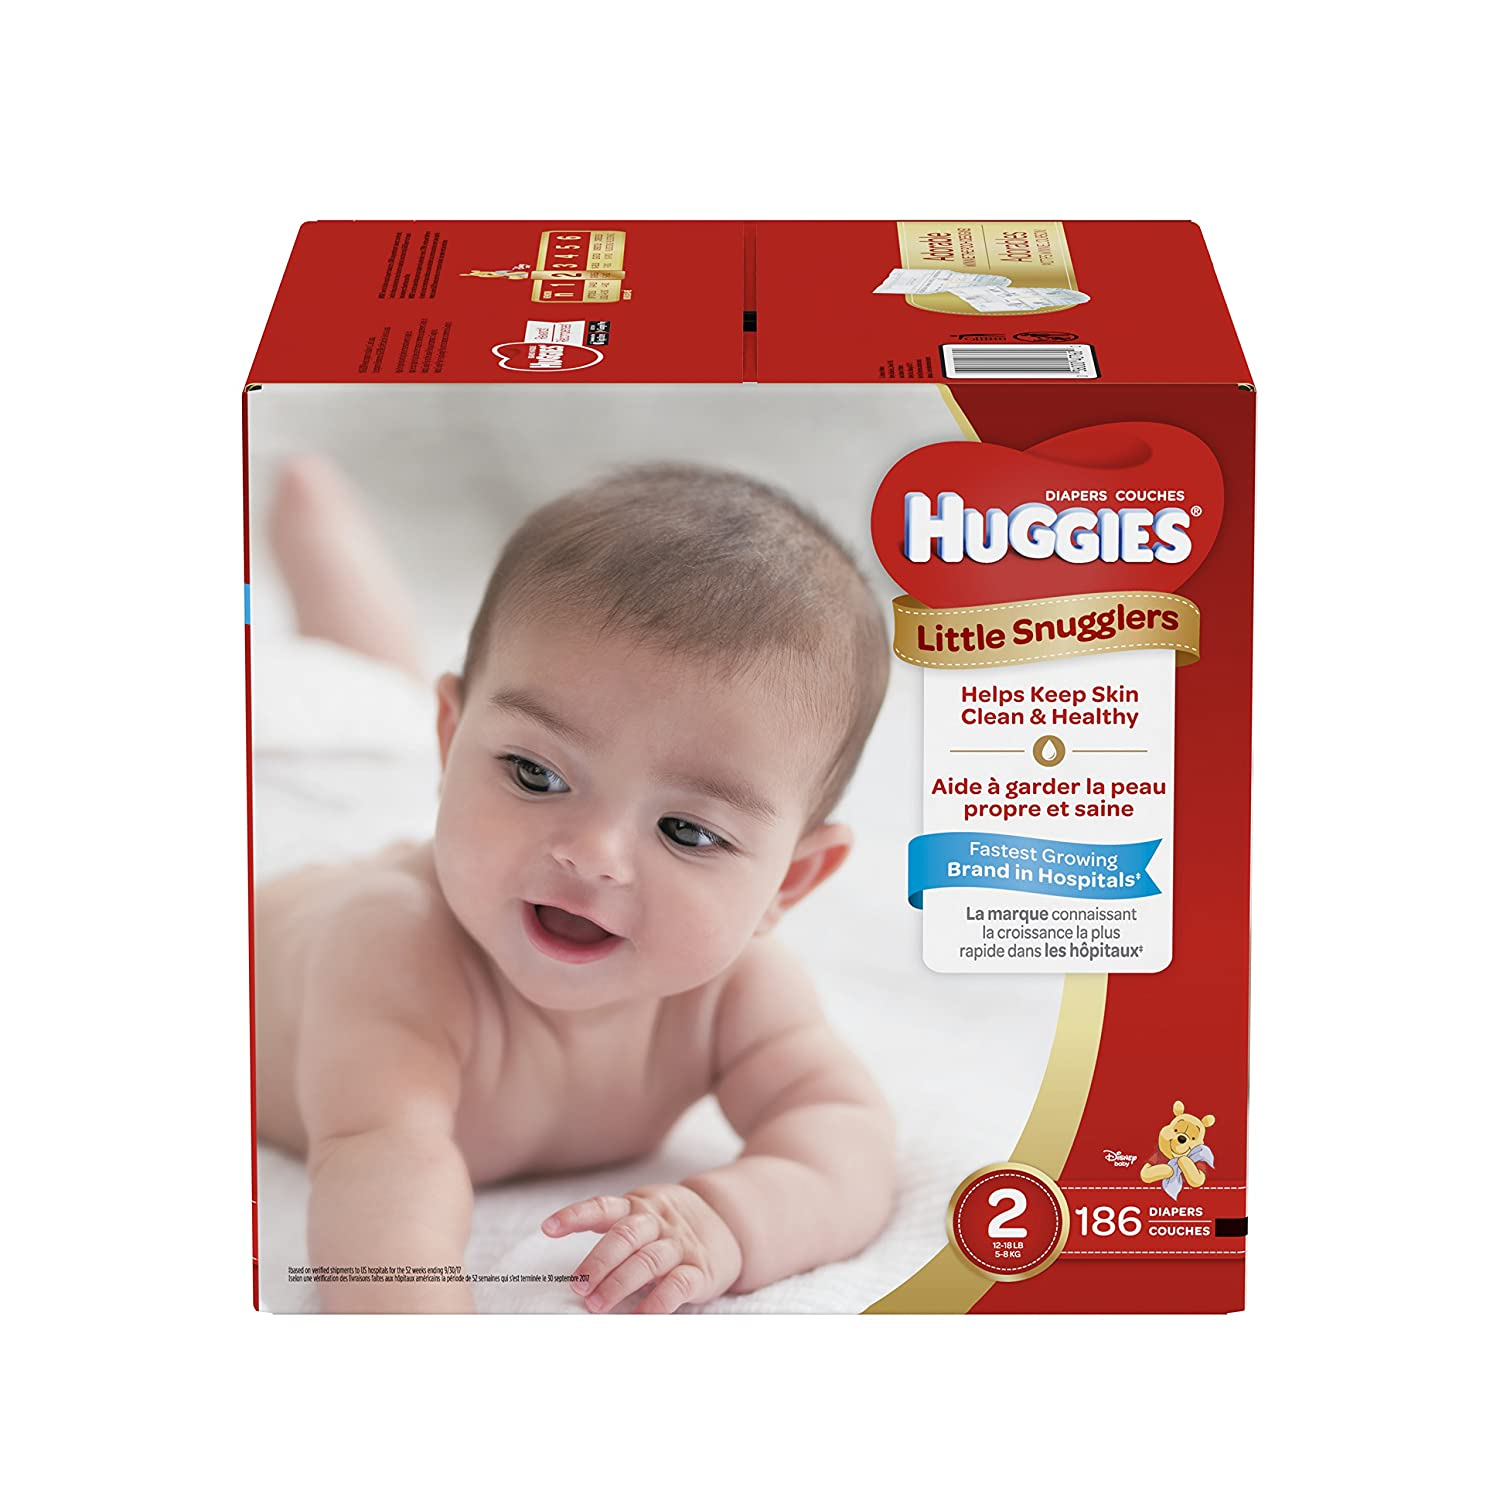 Huggies Little Snugglers Baby Diapers, Size 2, For 12 18 Lbs, One Month Supply (186 Count), Packaging May Vary by Huggies